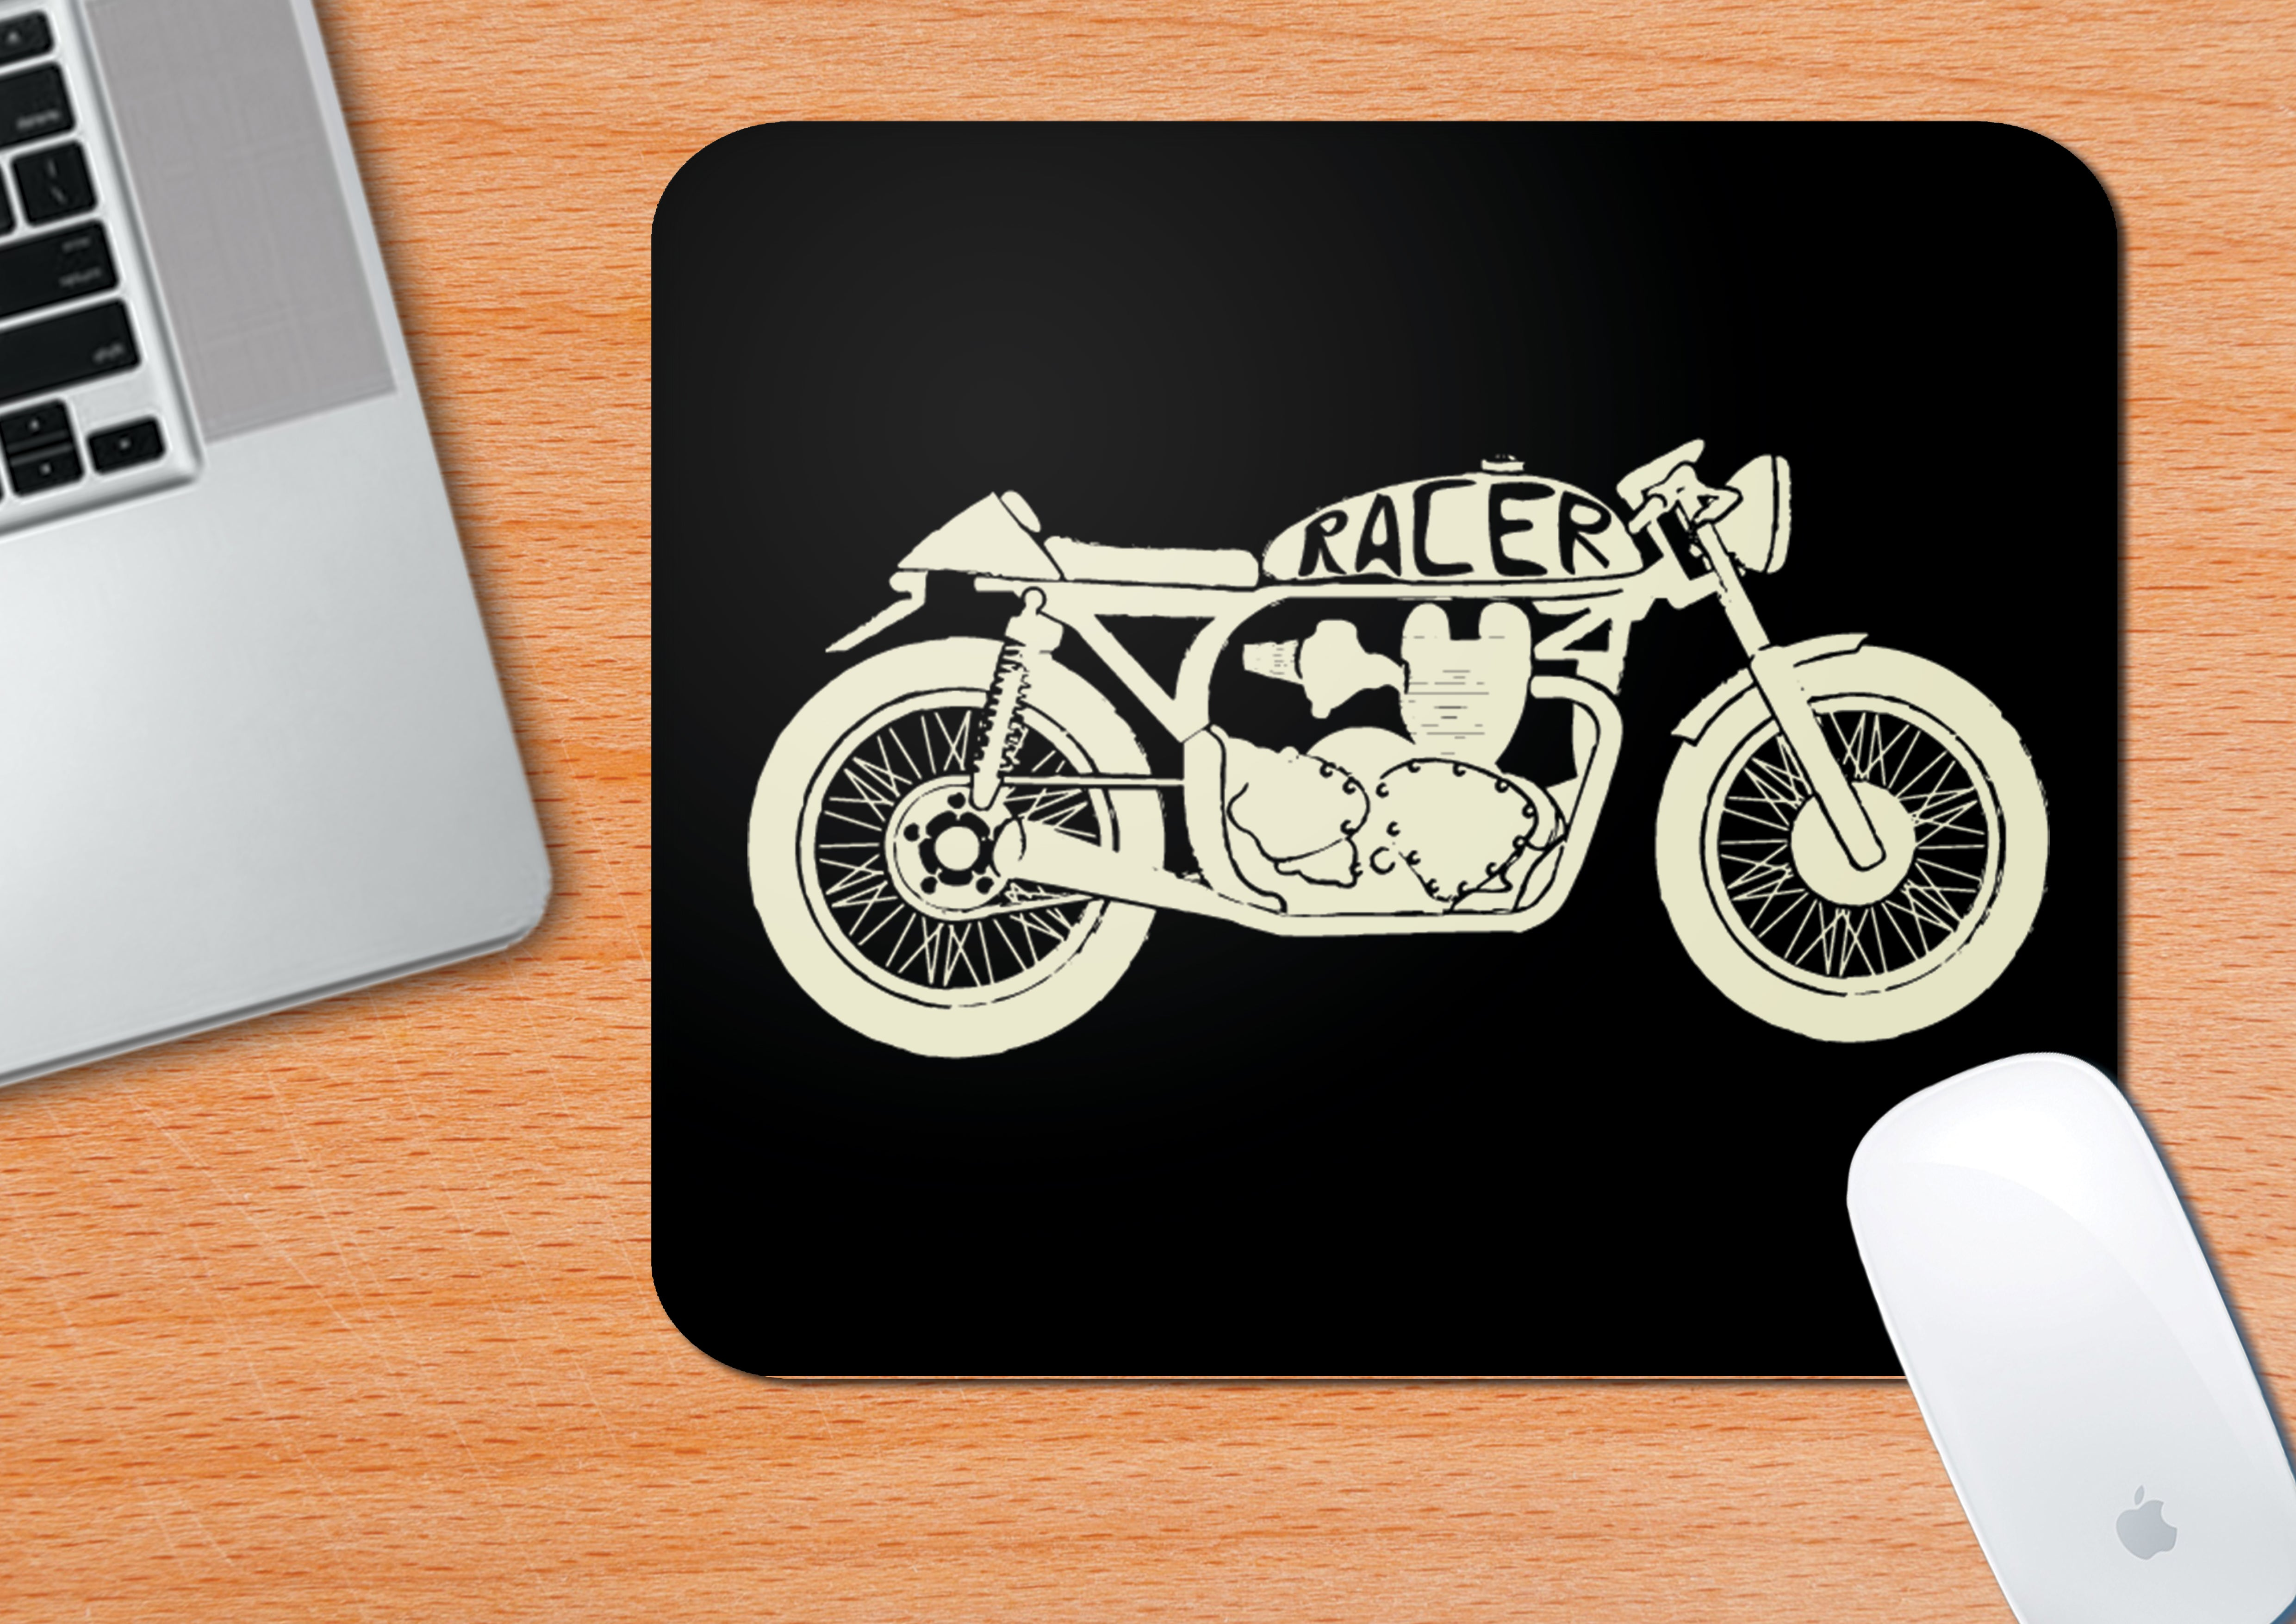 Buy-Vintage-Motorcycles-#3-Mouse-Pad| 100kmph